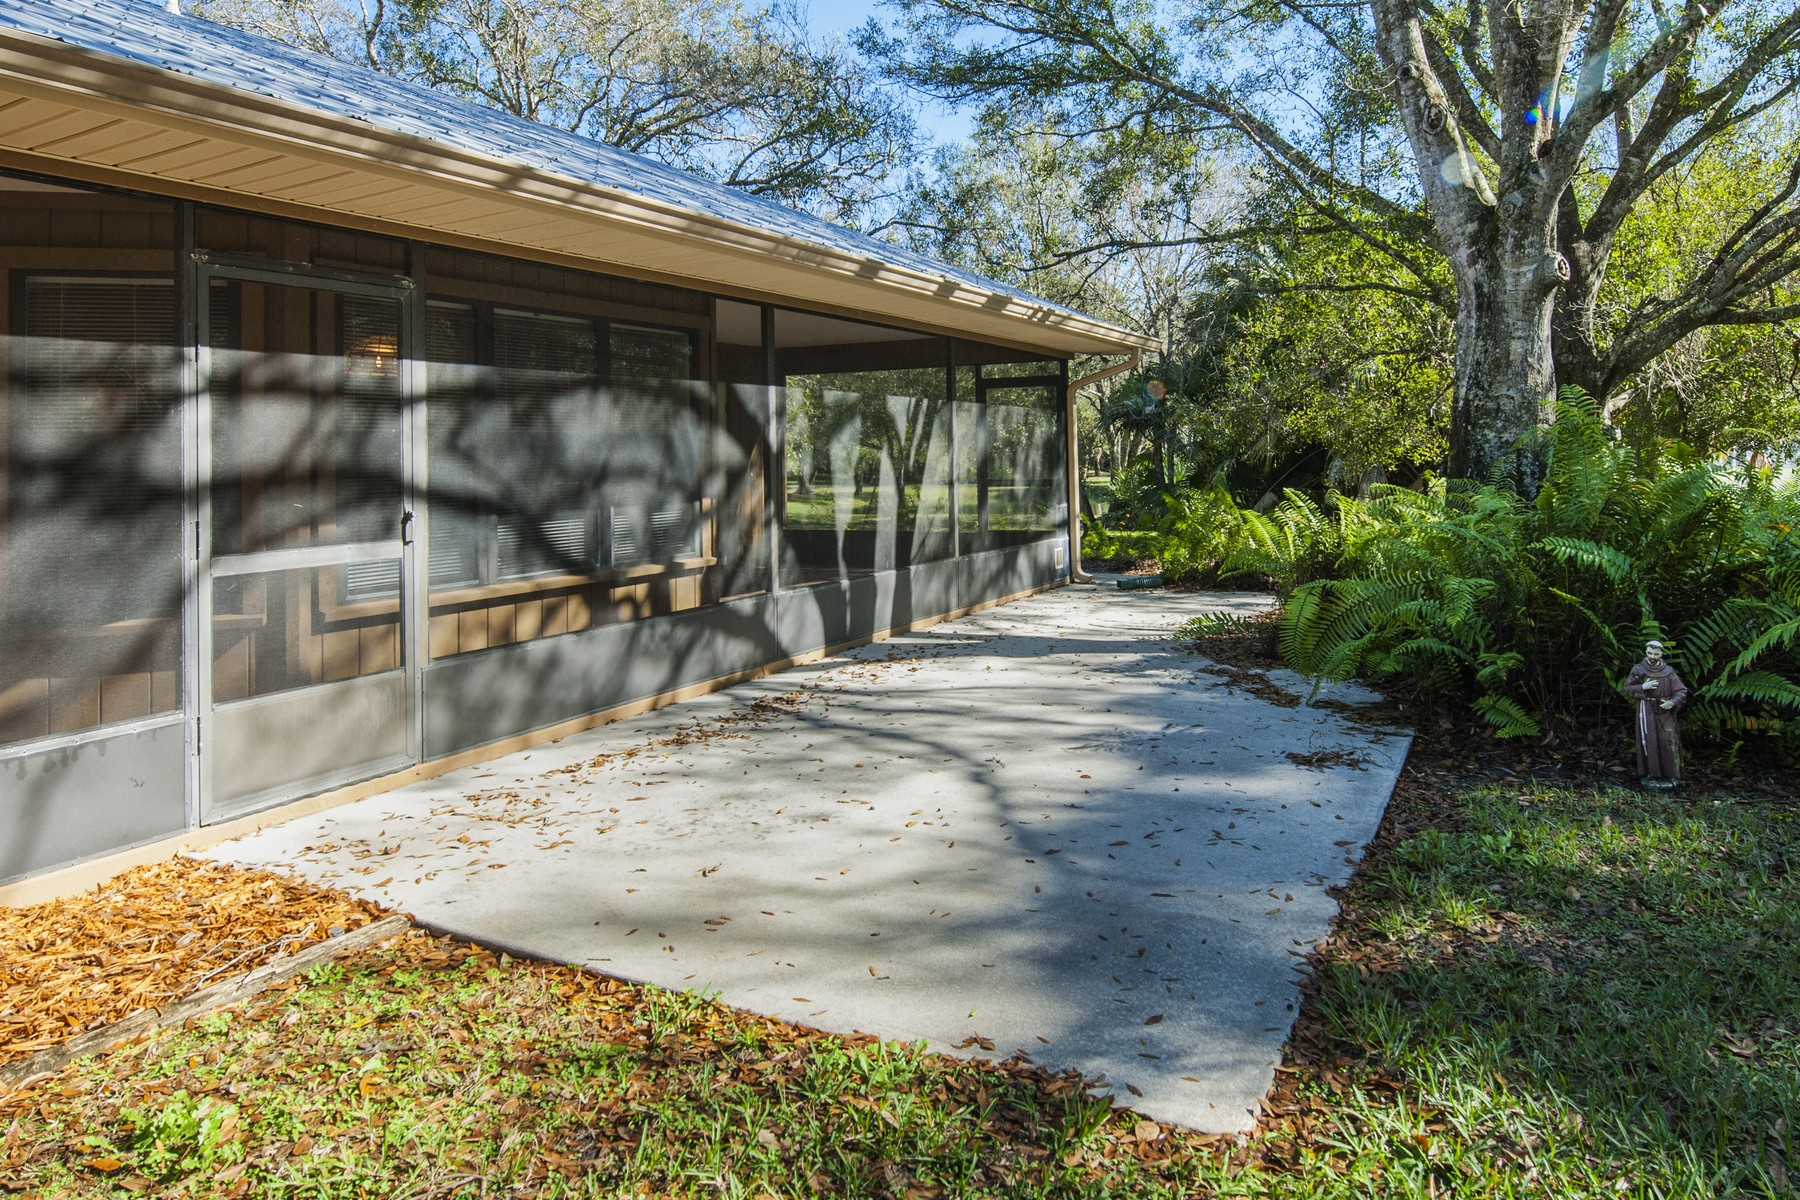 Additional photo for property listing at Peaceful estate in Indian River Farms 6365 45th Street Vero Beach, Florida 32967 United States